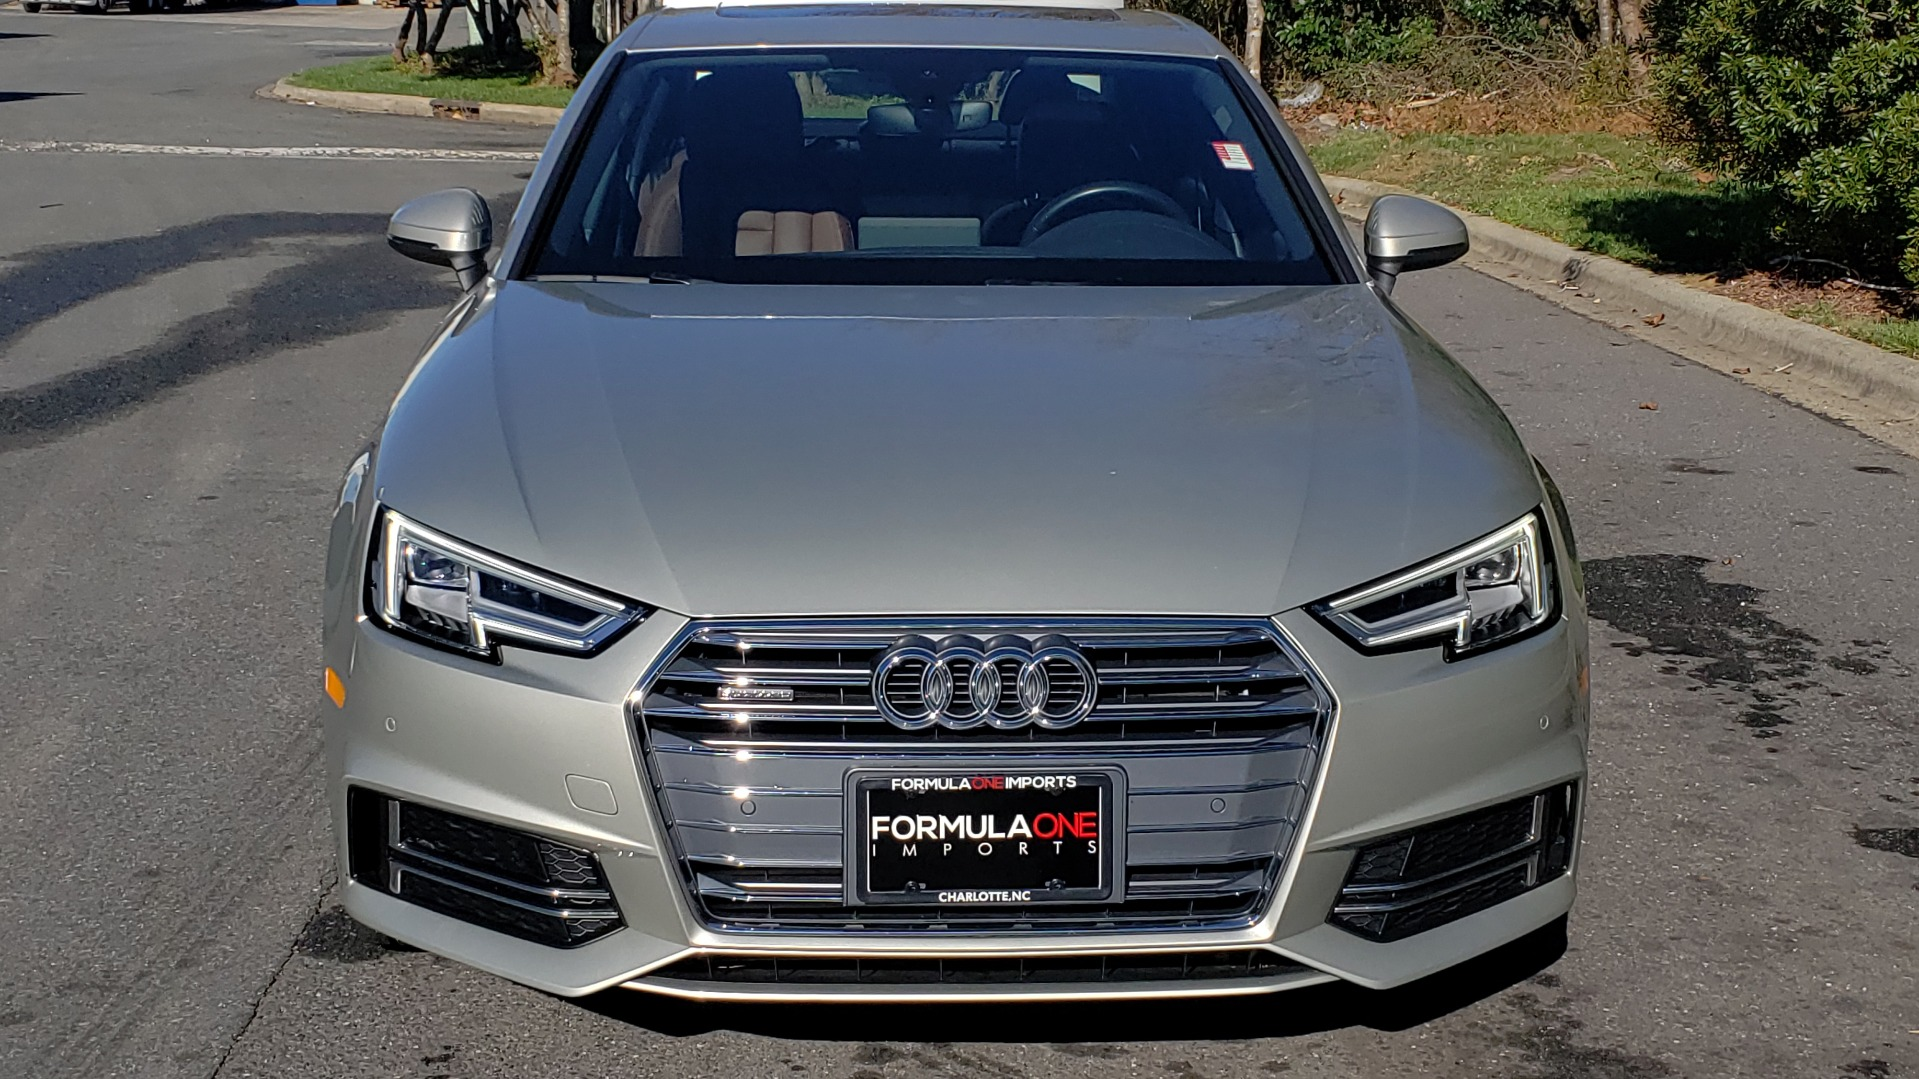 Used 2017 Audi A4 PREMIUM PLUS / TECH PKG / B&O SND / S-LINE / NAV / REARVIEW for sale Sold at Formula Imports in Charlotte NC 28227 13